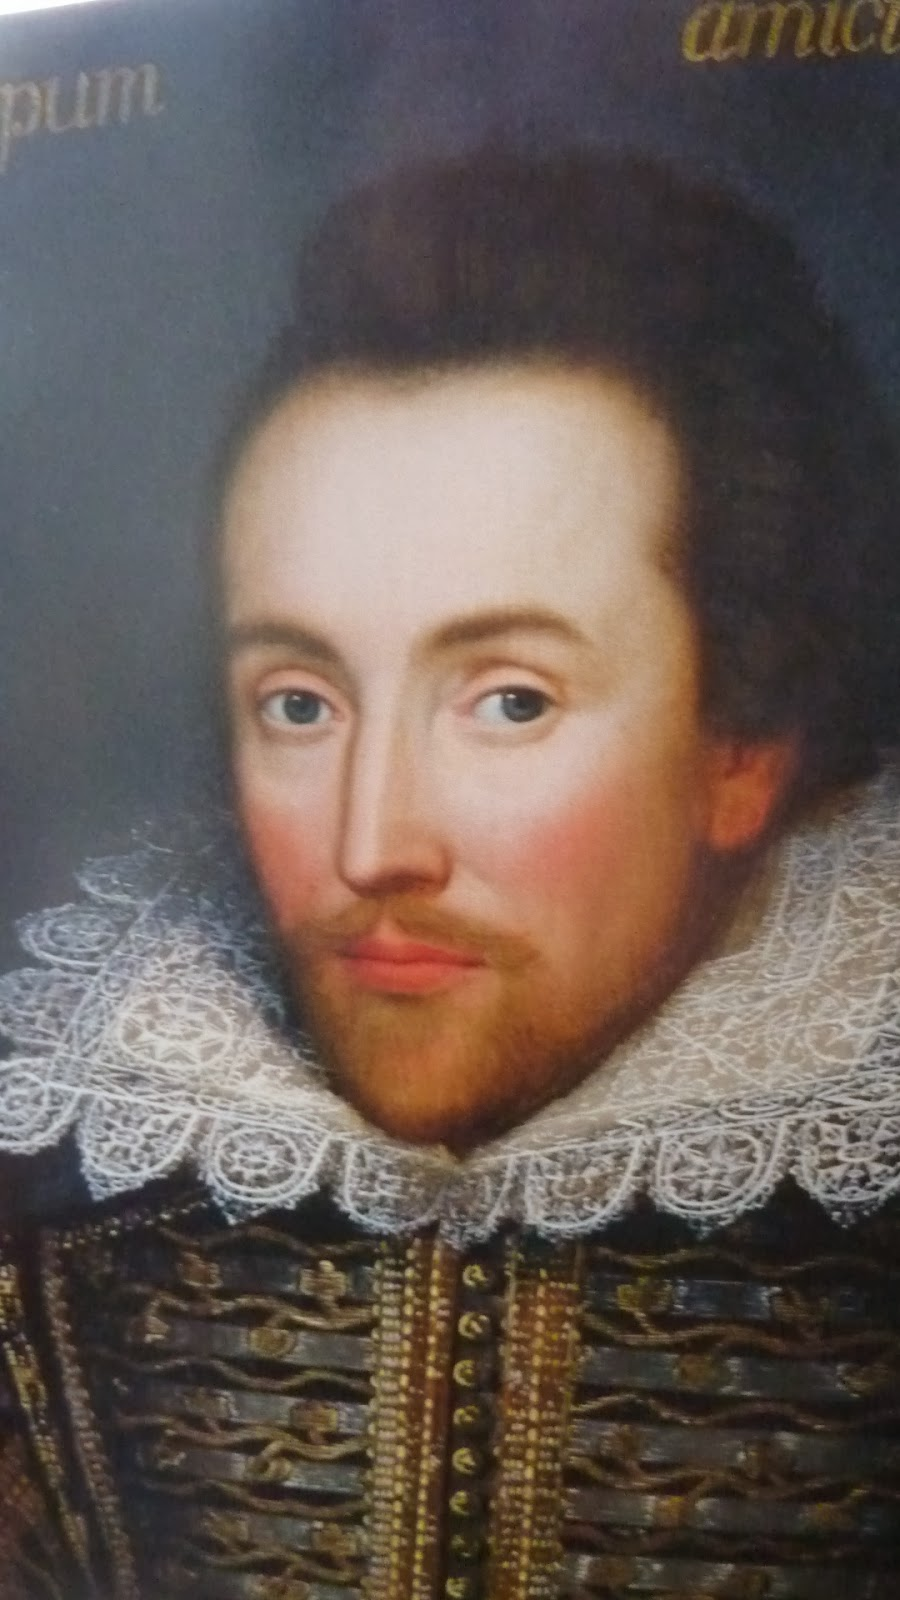 shakespeare adaptations This database includes the complete text of 11 major editions of shakespeare's works, from the first folio to the a wide selection of theater adaptations enables further comparative studies.